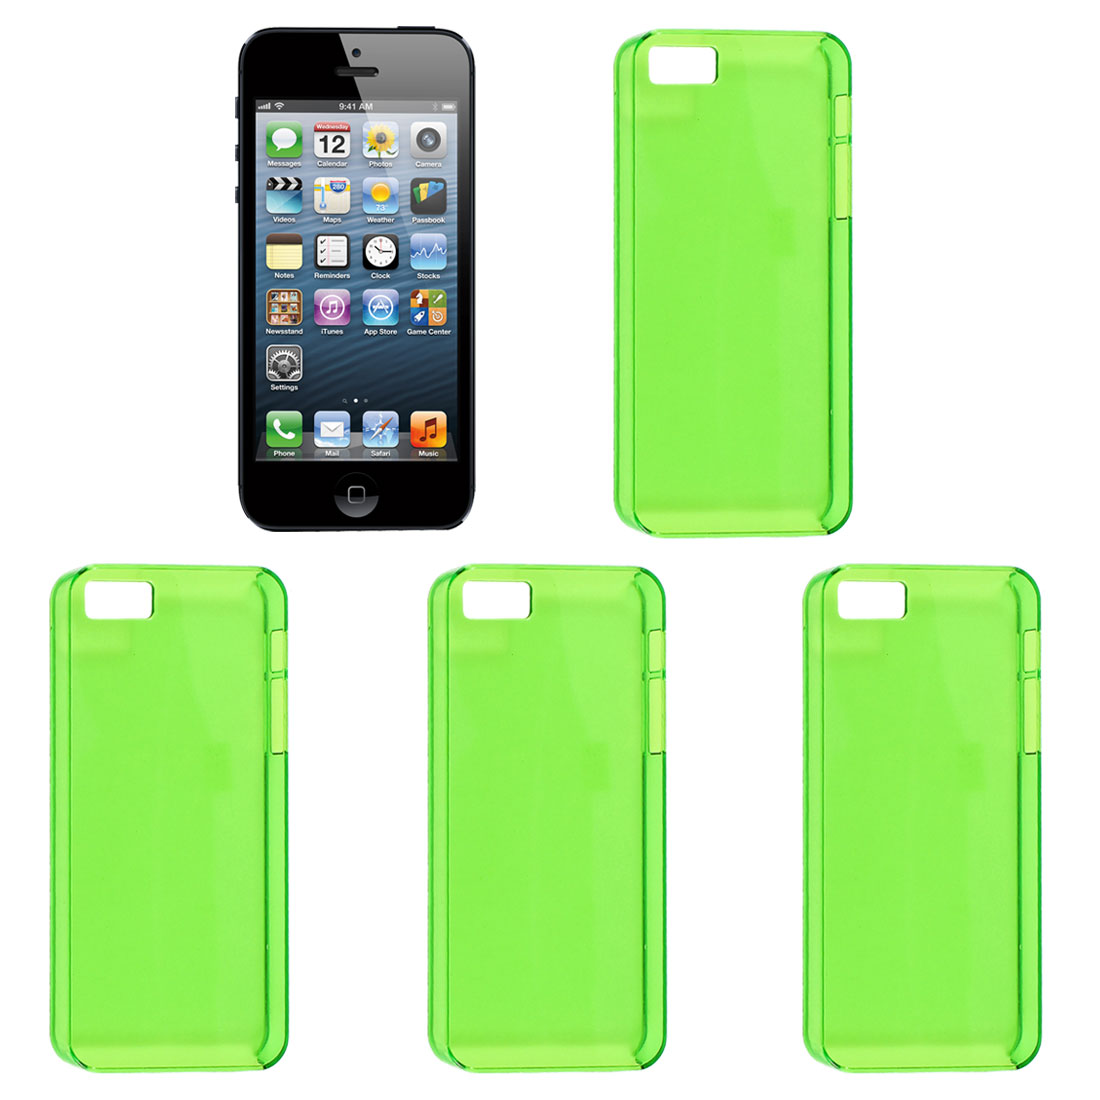 4 Pcs Green Plastic Protector Shell Back Case Cover for iPhone 5 5S 5G 5GS